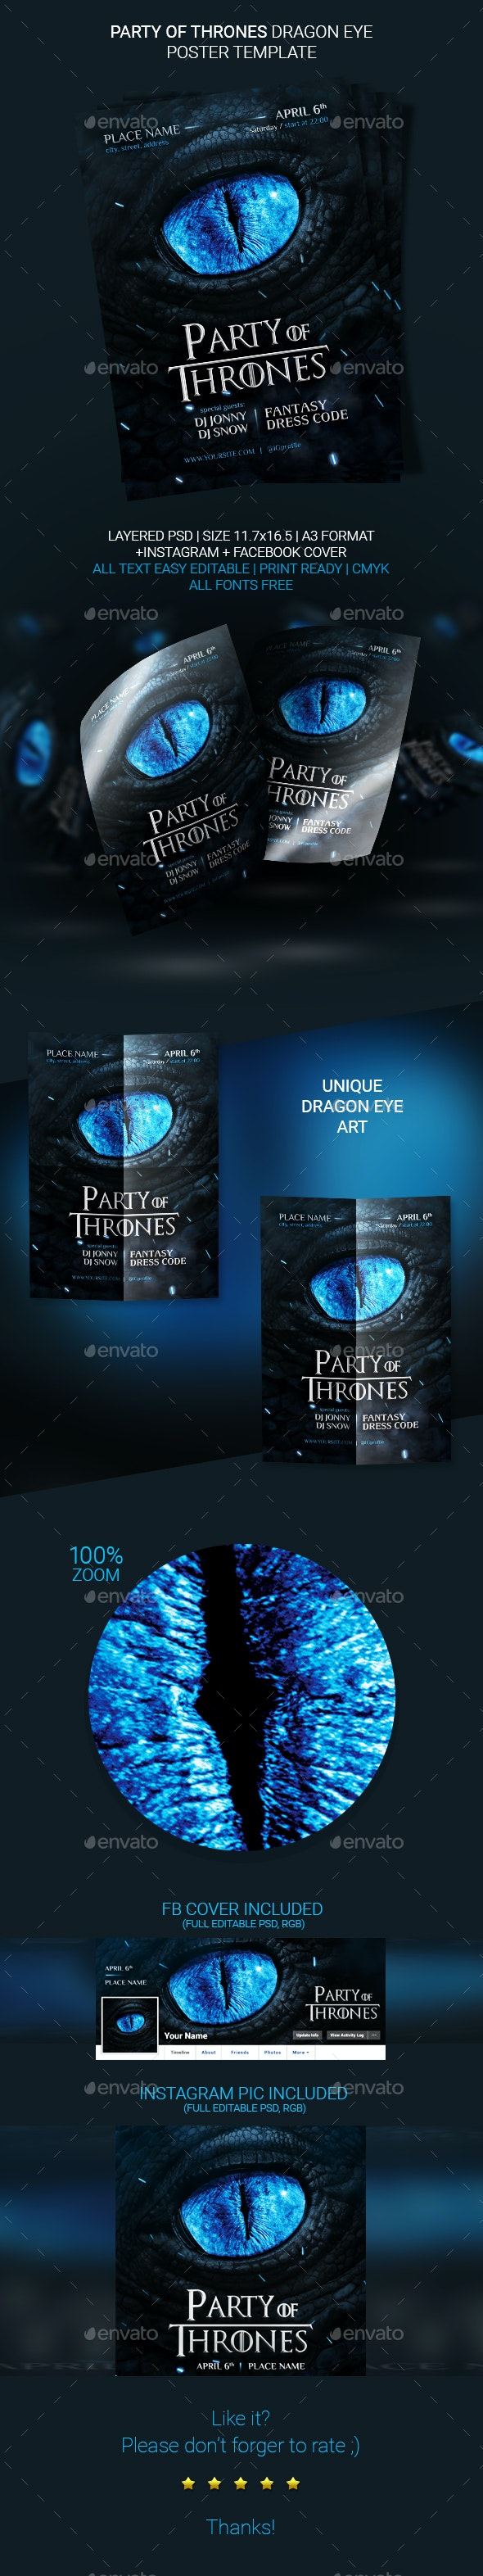 Party Of Thrones Poster Template - Events Flyers